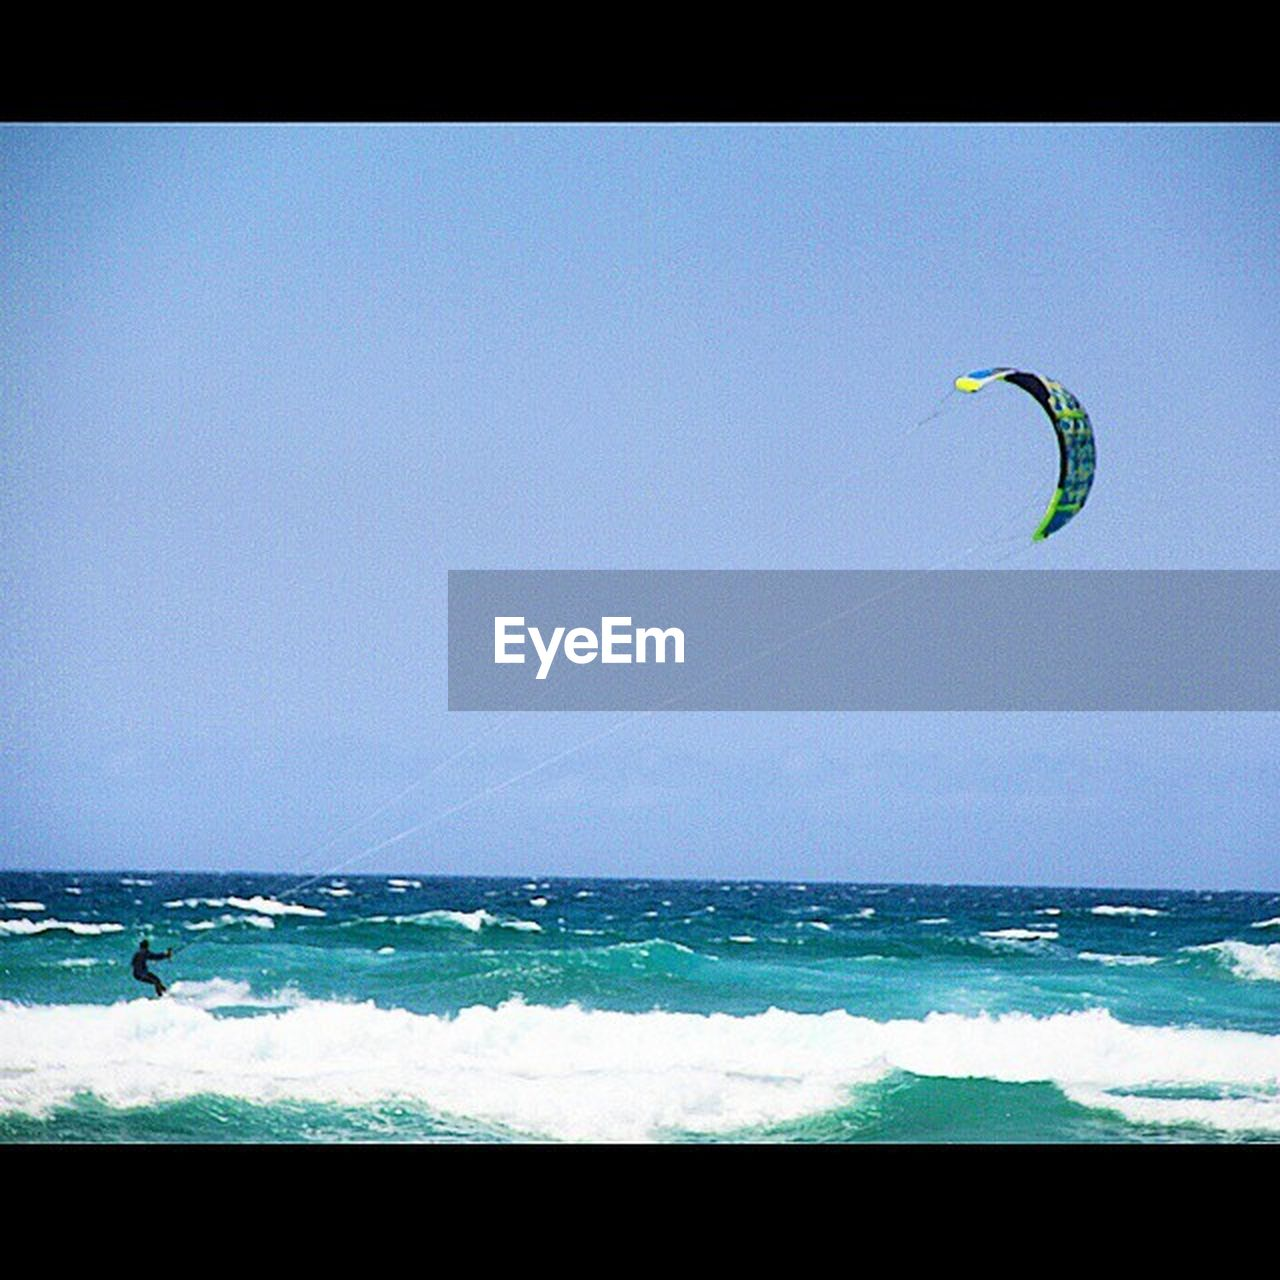 sea, extreme sports, horizon over water, sport, adventure, wave, kiteboarding, nature, leisure activity, water, one person, vacations, scenics, surfing, motion, day, beach, blue, outdoors, beauty in nature, sky, parachute, real people, paragliding, one man only, people